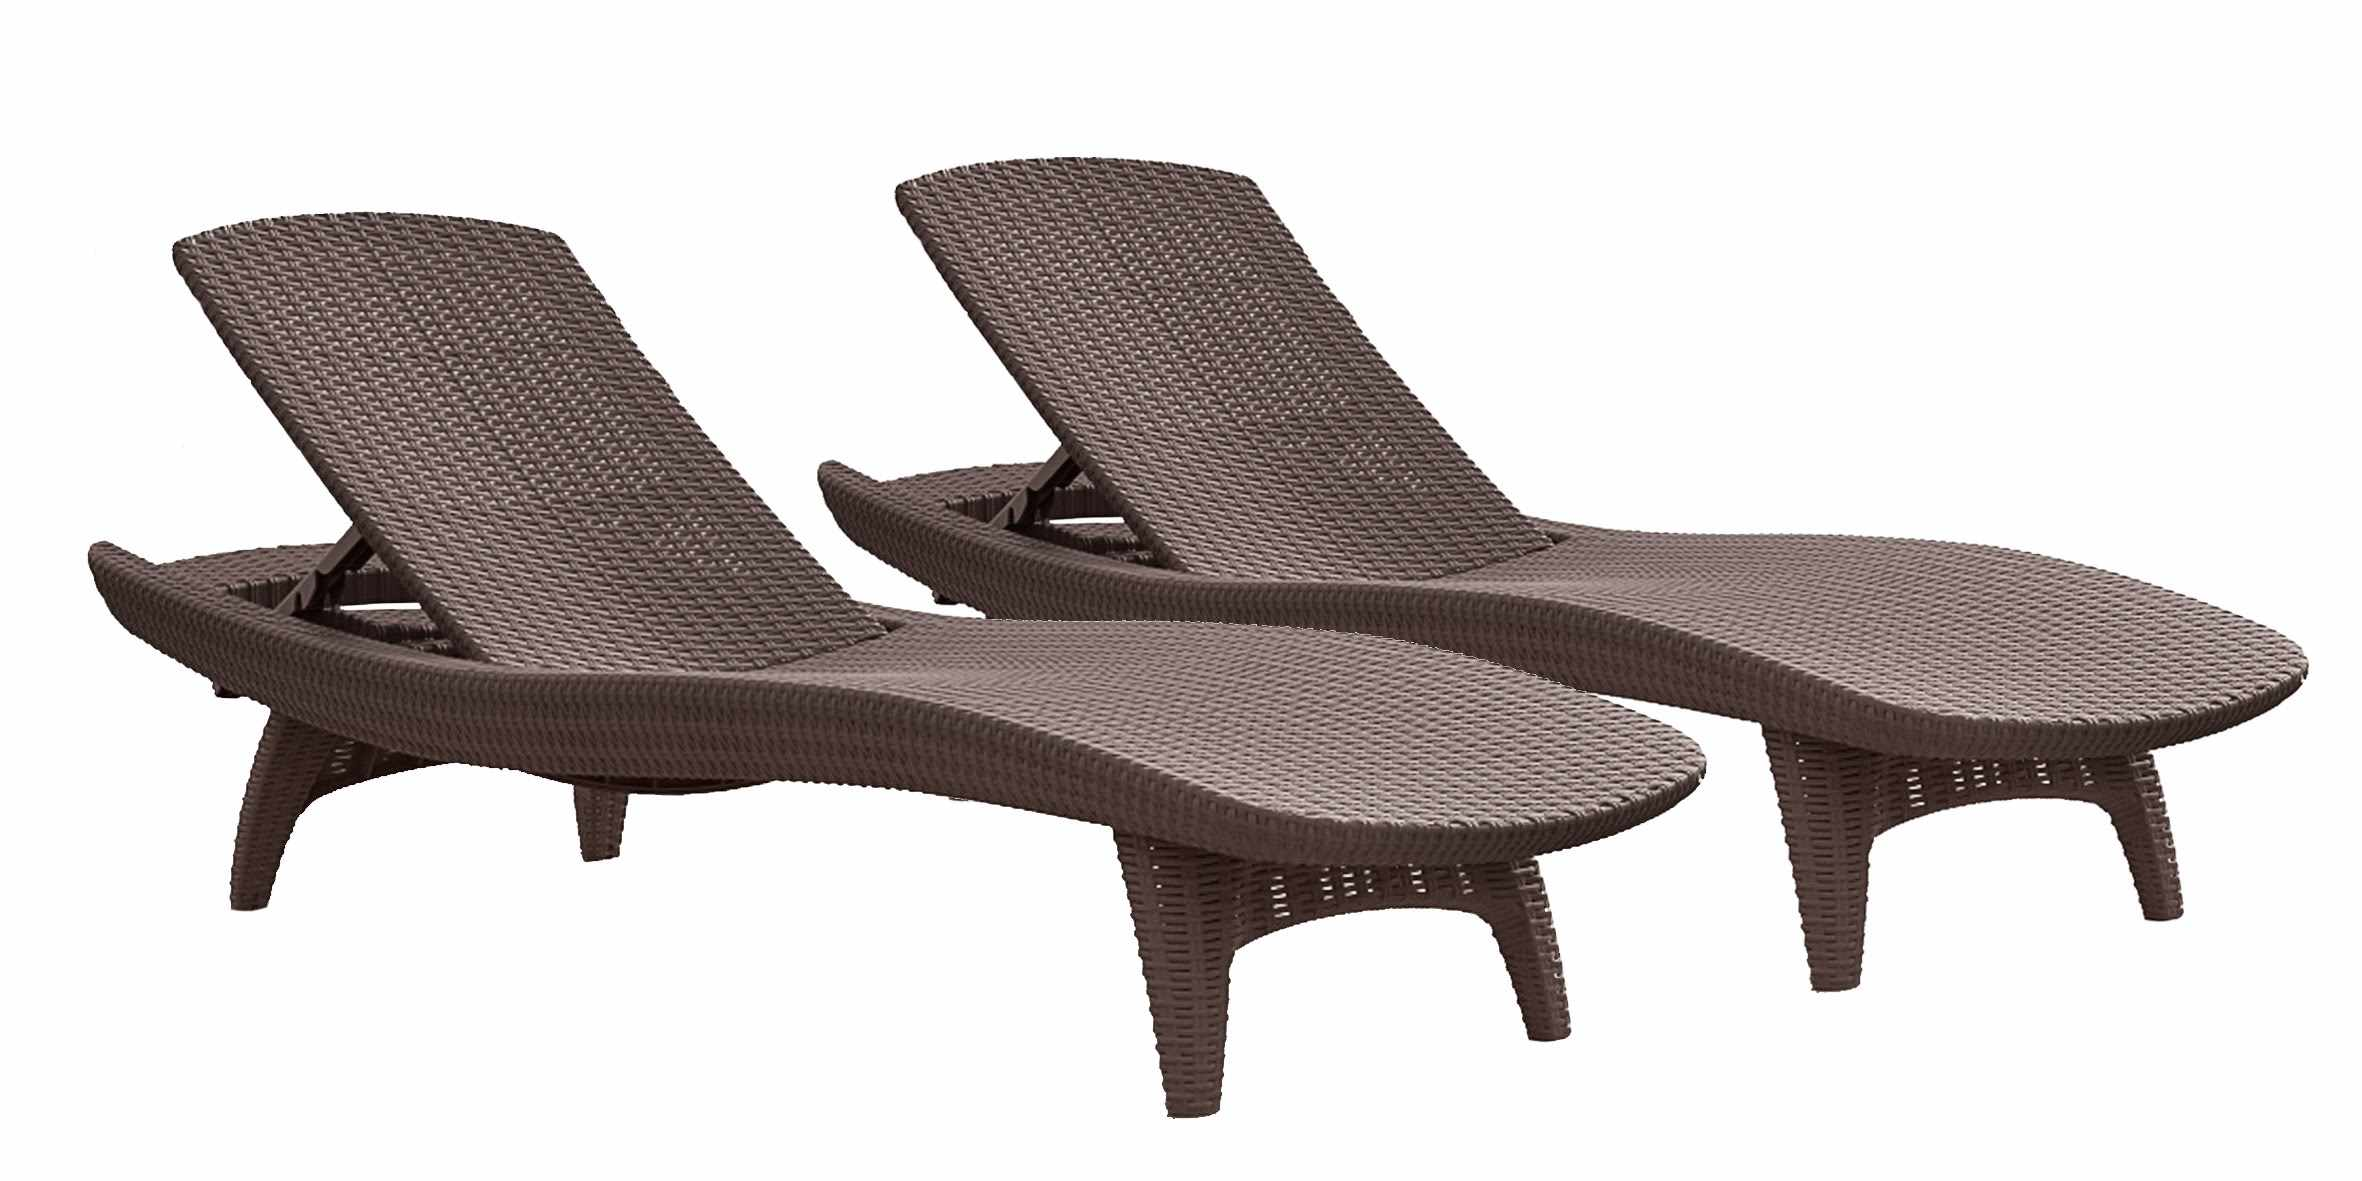 Keter Pacific Chaise Sun Lounger 2-Pack Adjustable, Grey